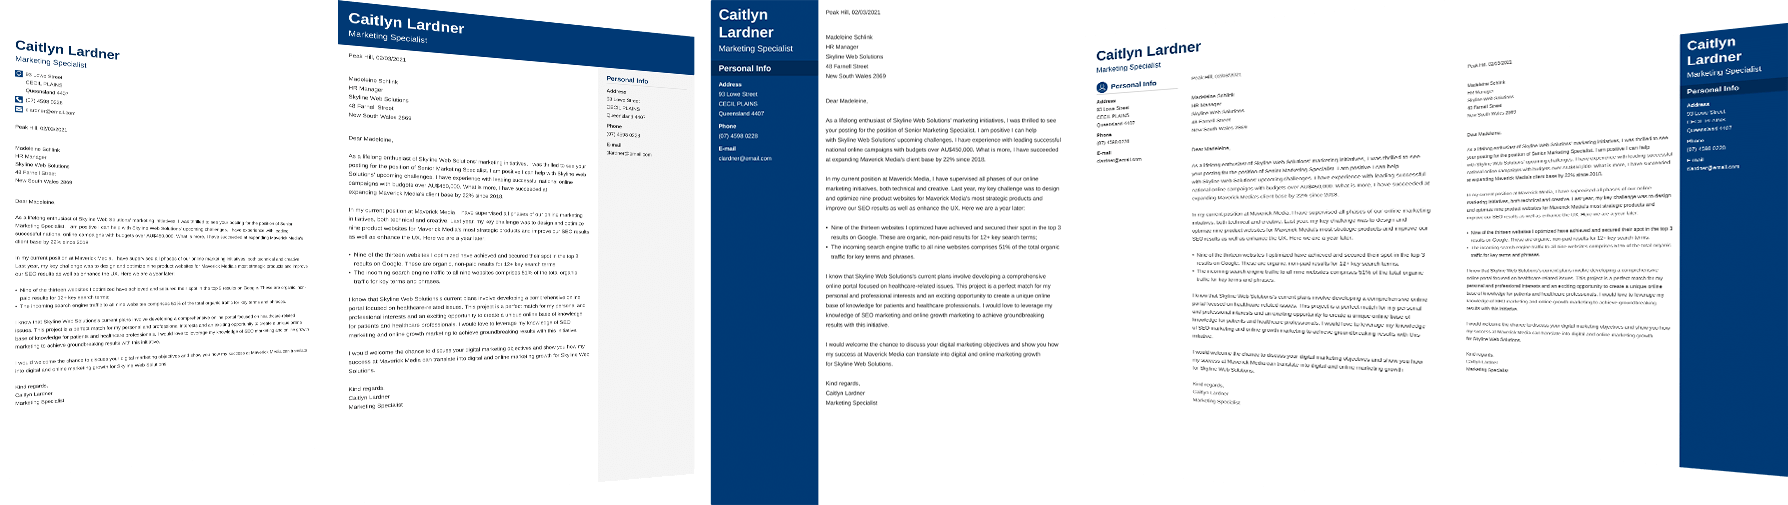 Carousel of cover letters made with zety cover letter builder.